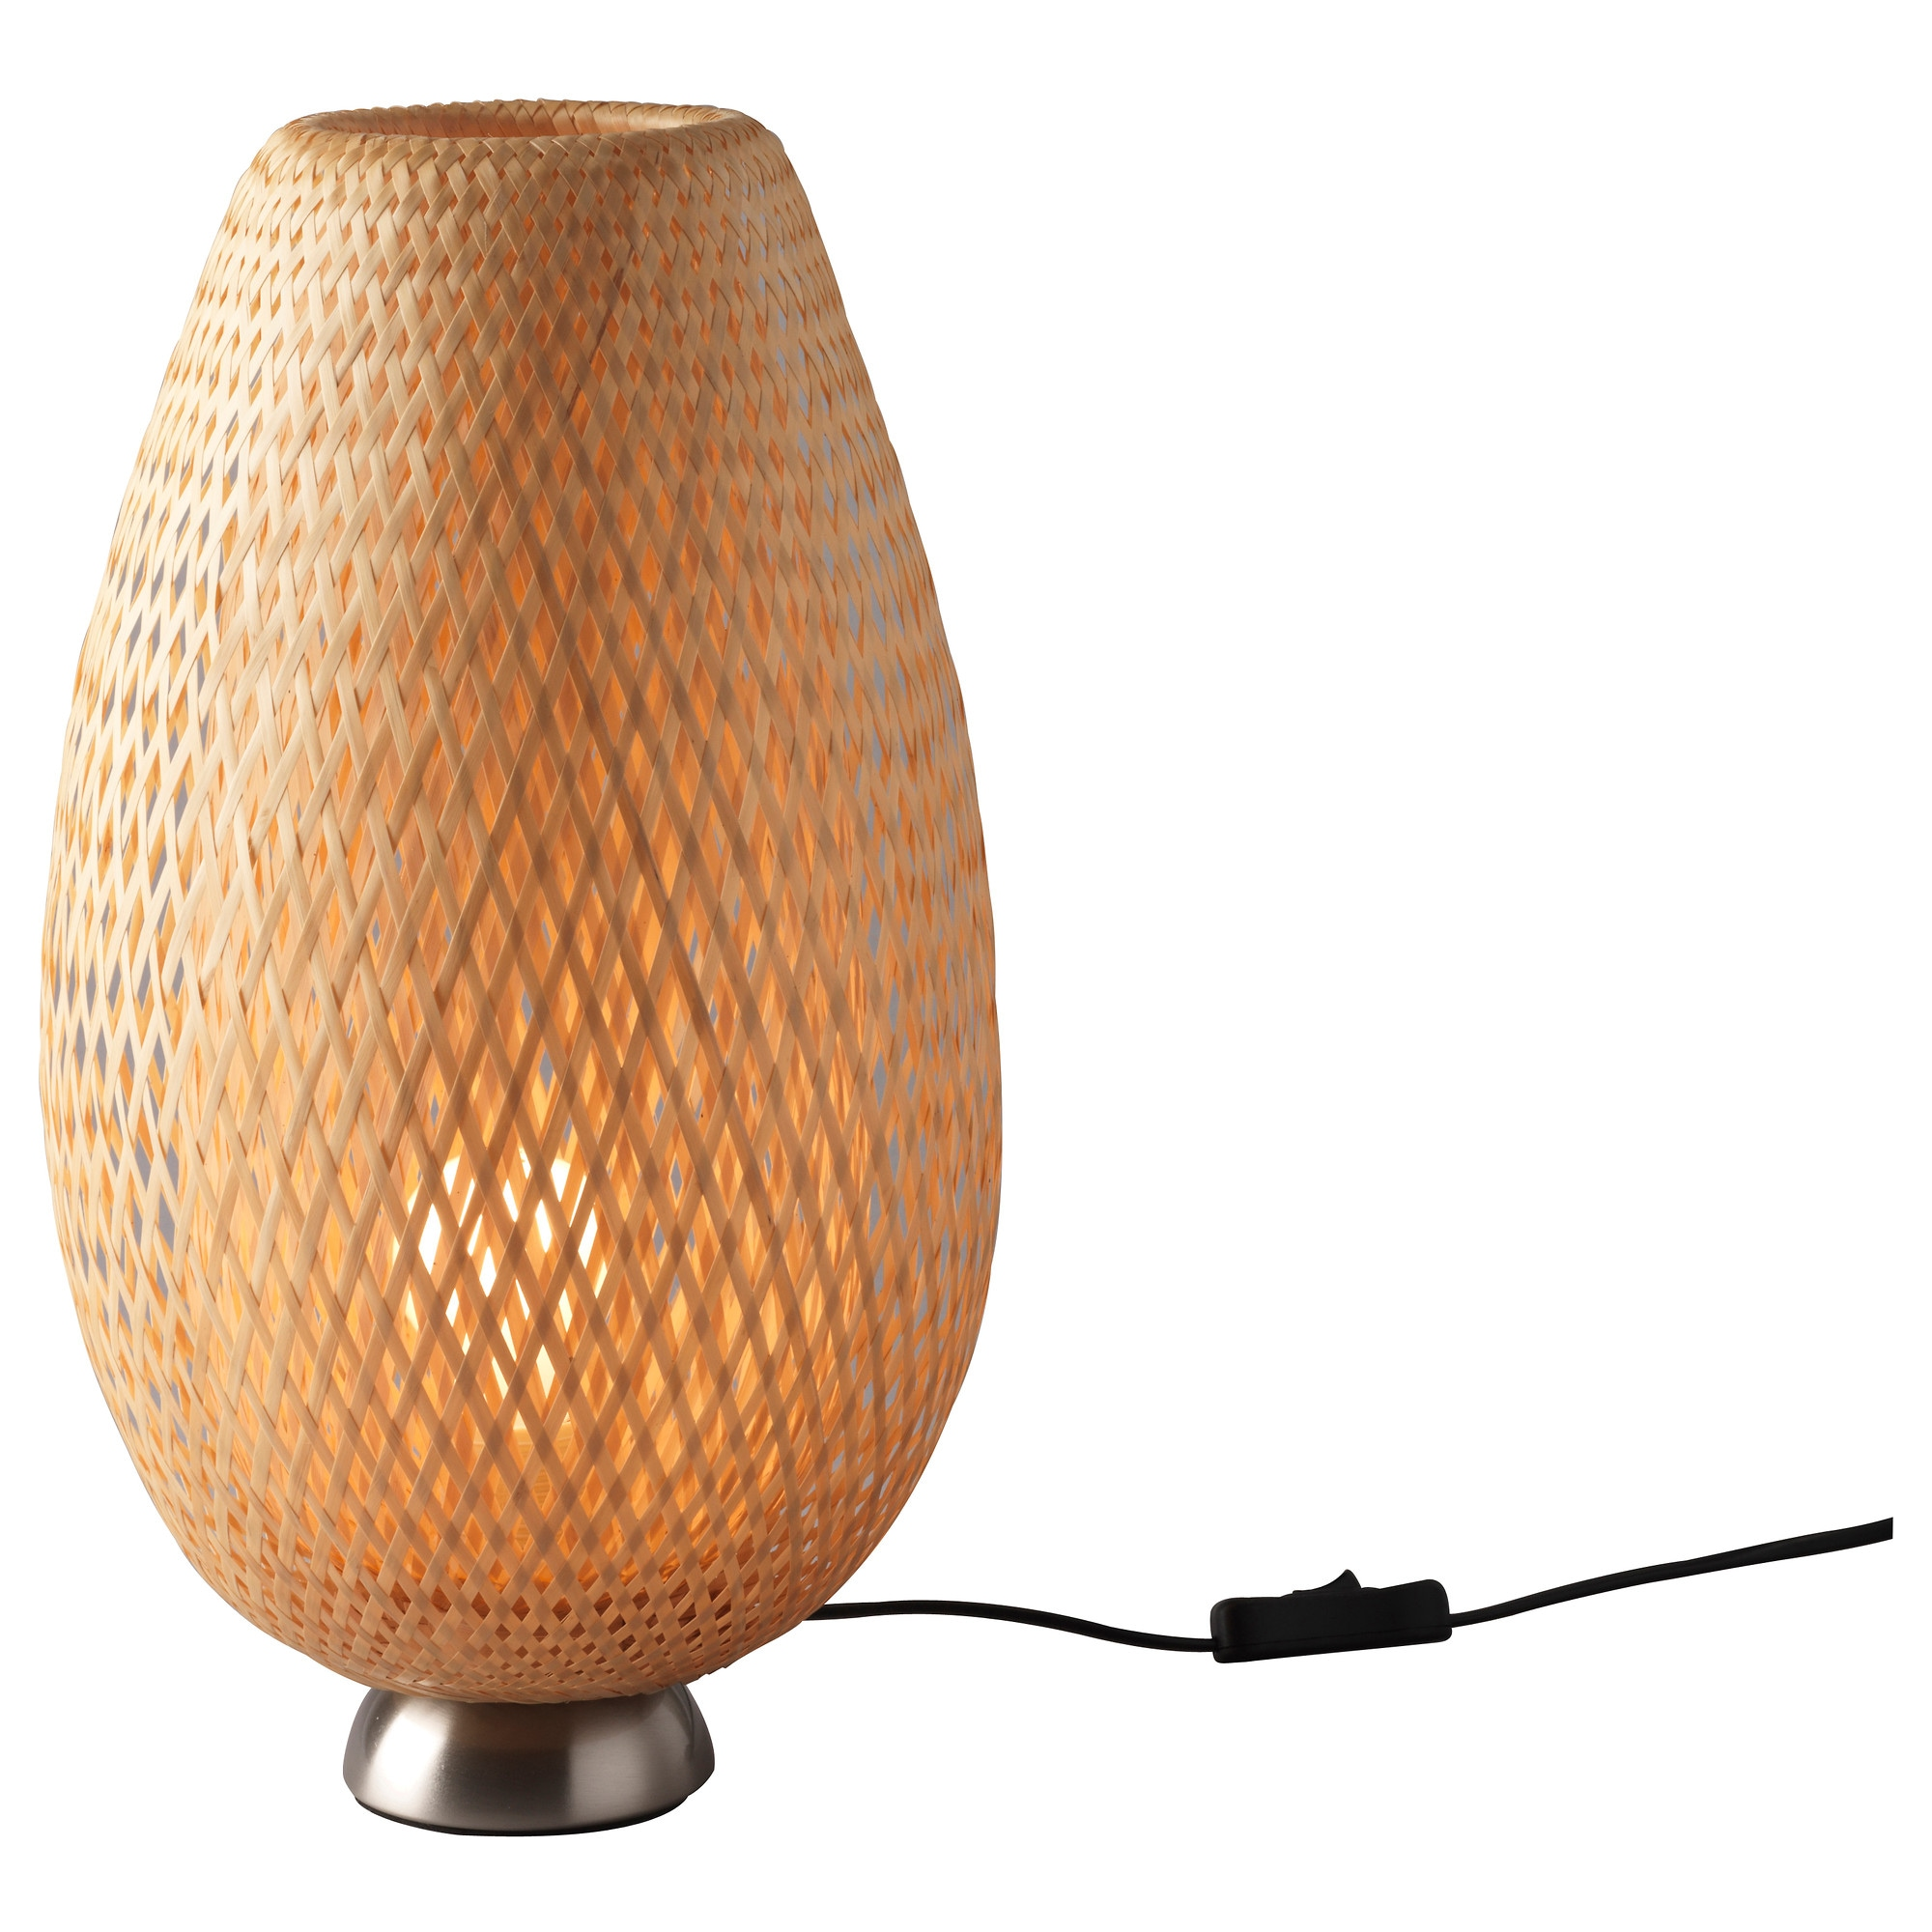 BÖJA Table lamp with LED bulb - IKEA for Bamboo Lamp Shade Ikea  146hul